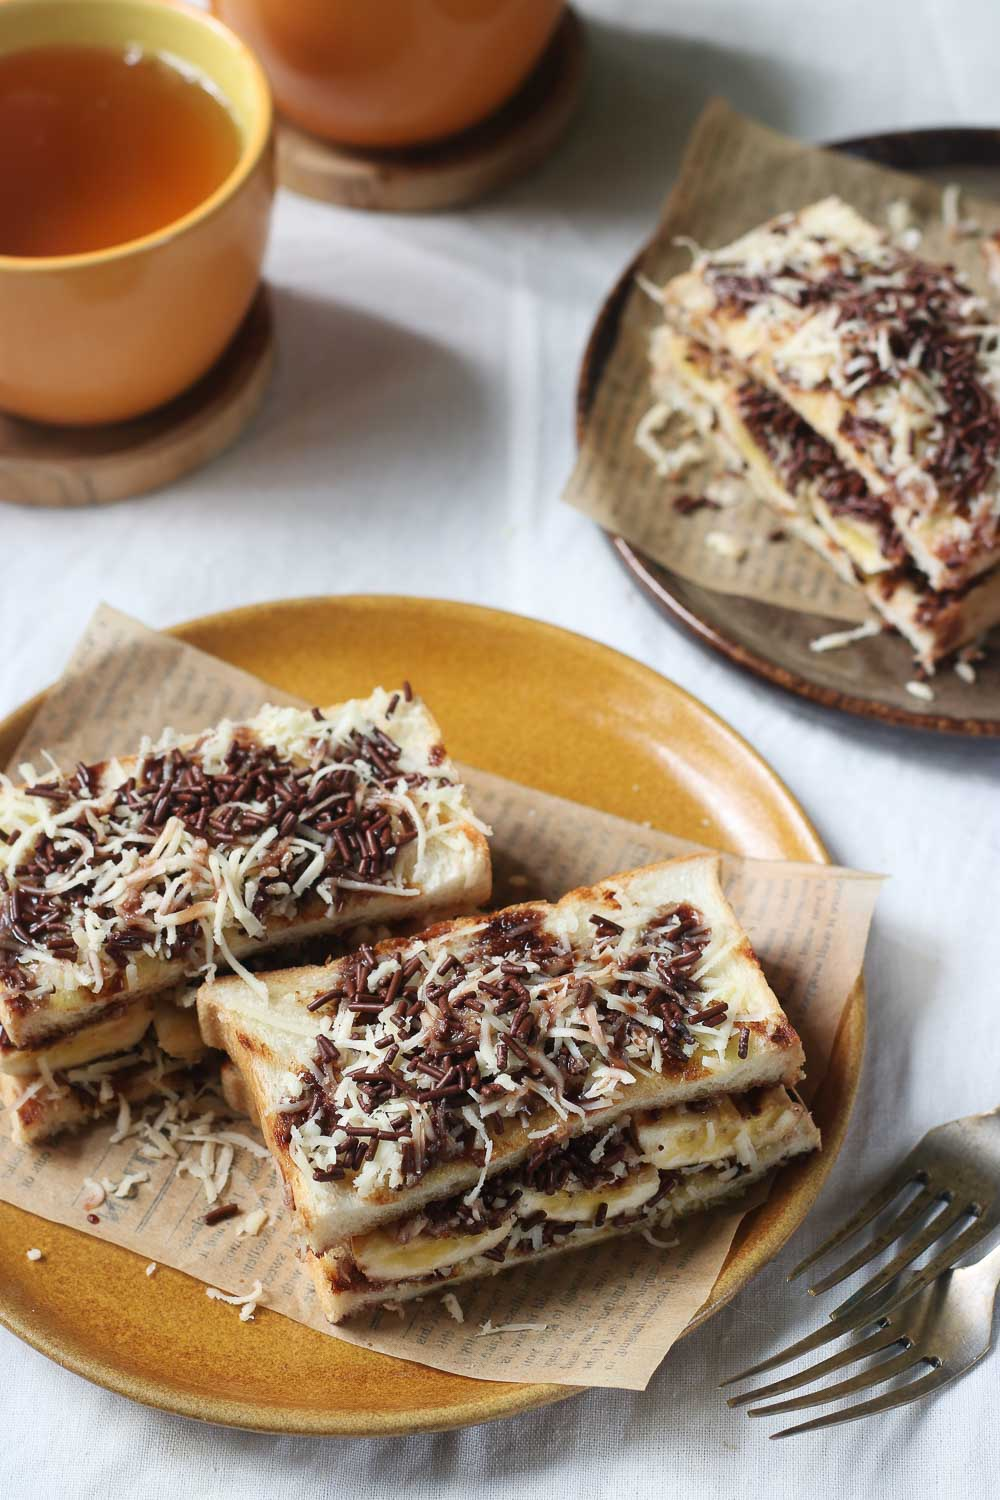 These grilled bananas/toast topped with chocolate and cheese which are also known as Indonesian roti pisang bakar makes a good late-night snack. They're so easy to make and perfect with a bowl of sweet peanut soup or black rice sweet porridge.